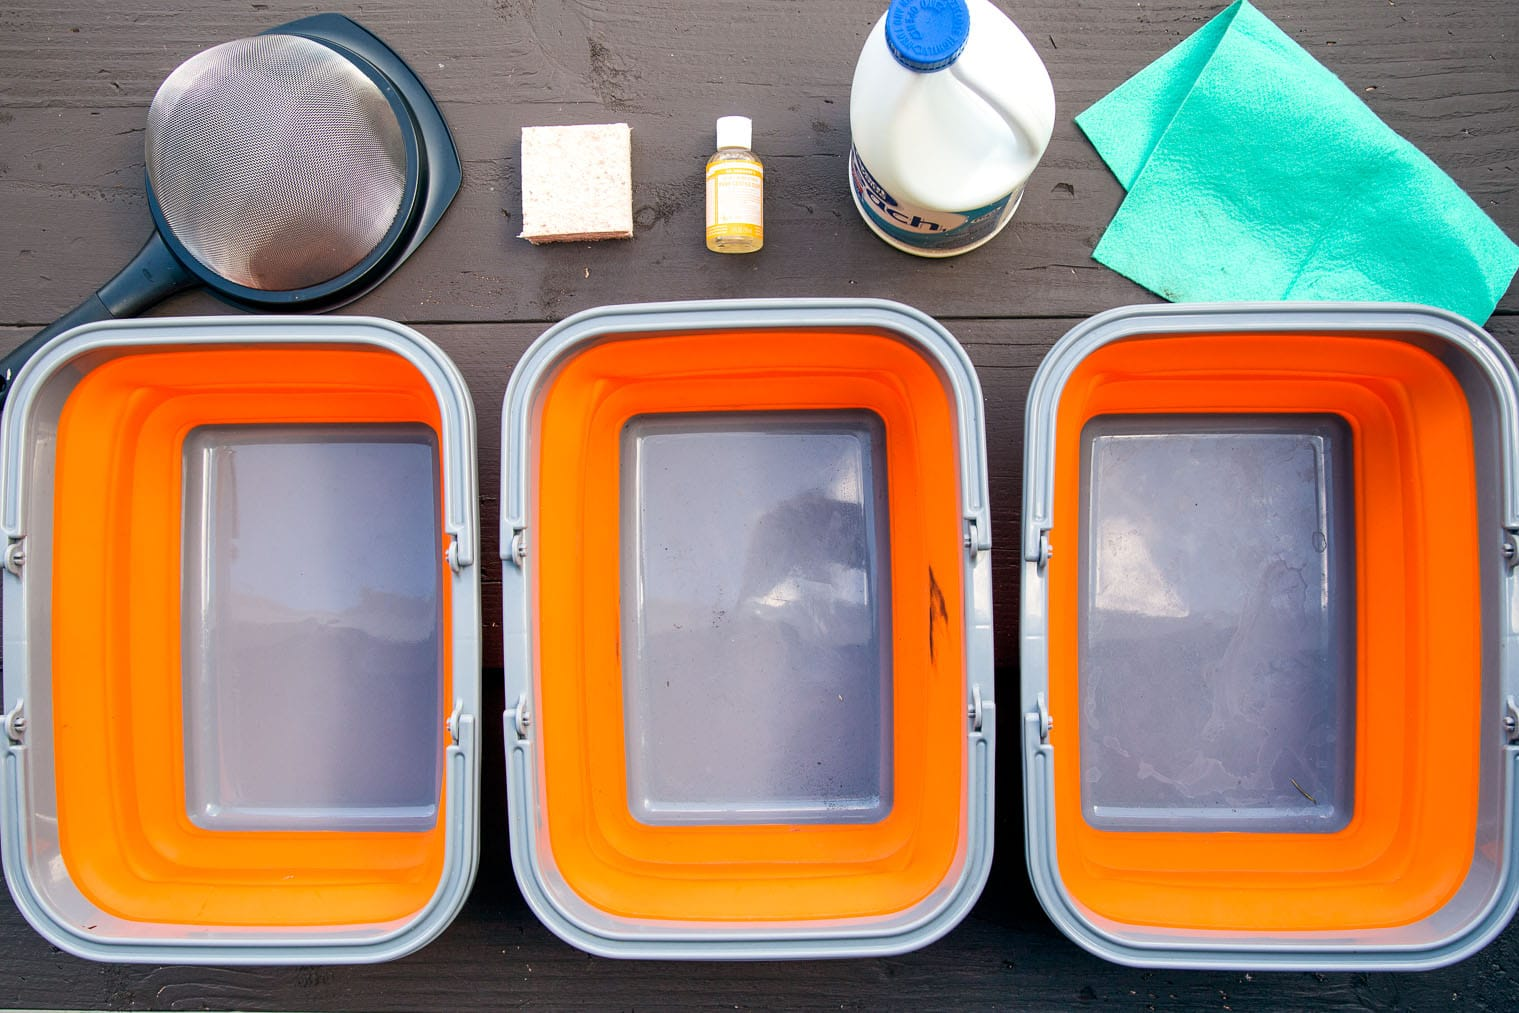 Camp-style dishwashing system. Photo credit: https://www.freshoffthegrid.com